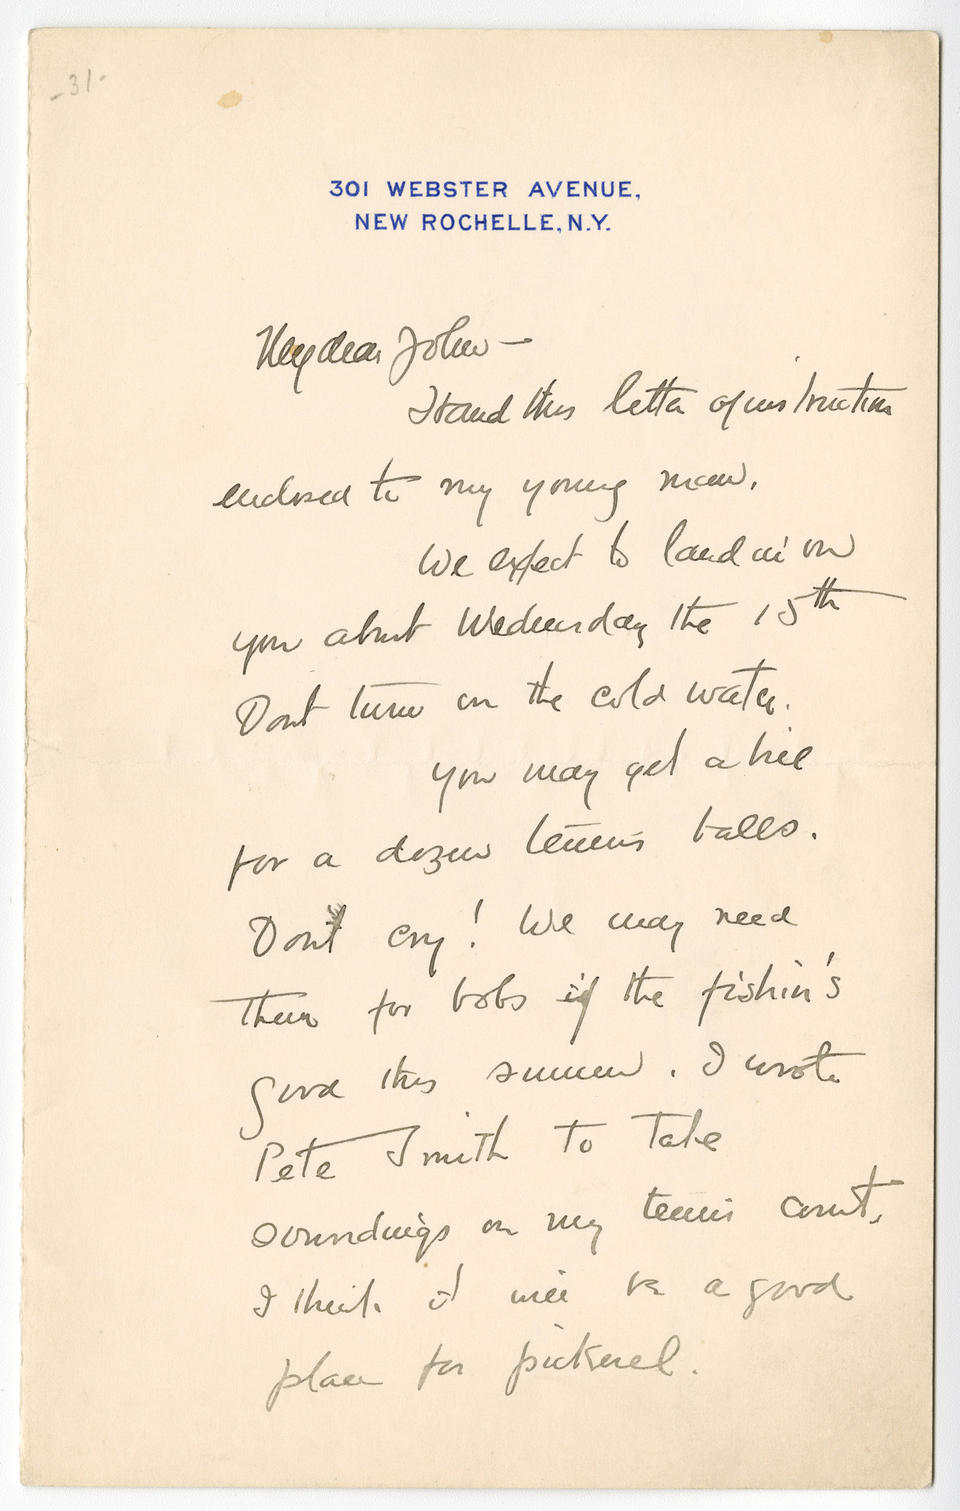 Frederic Remington Collection My dear John Hand this letter of